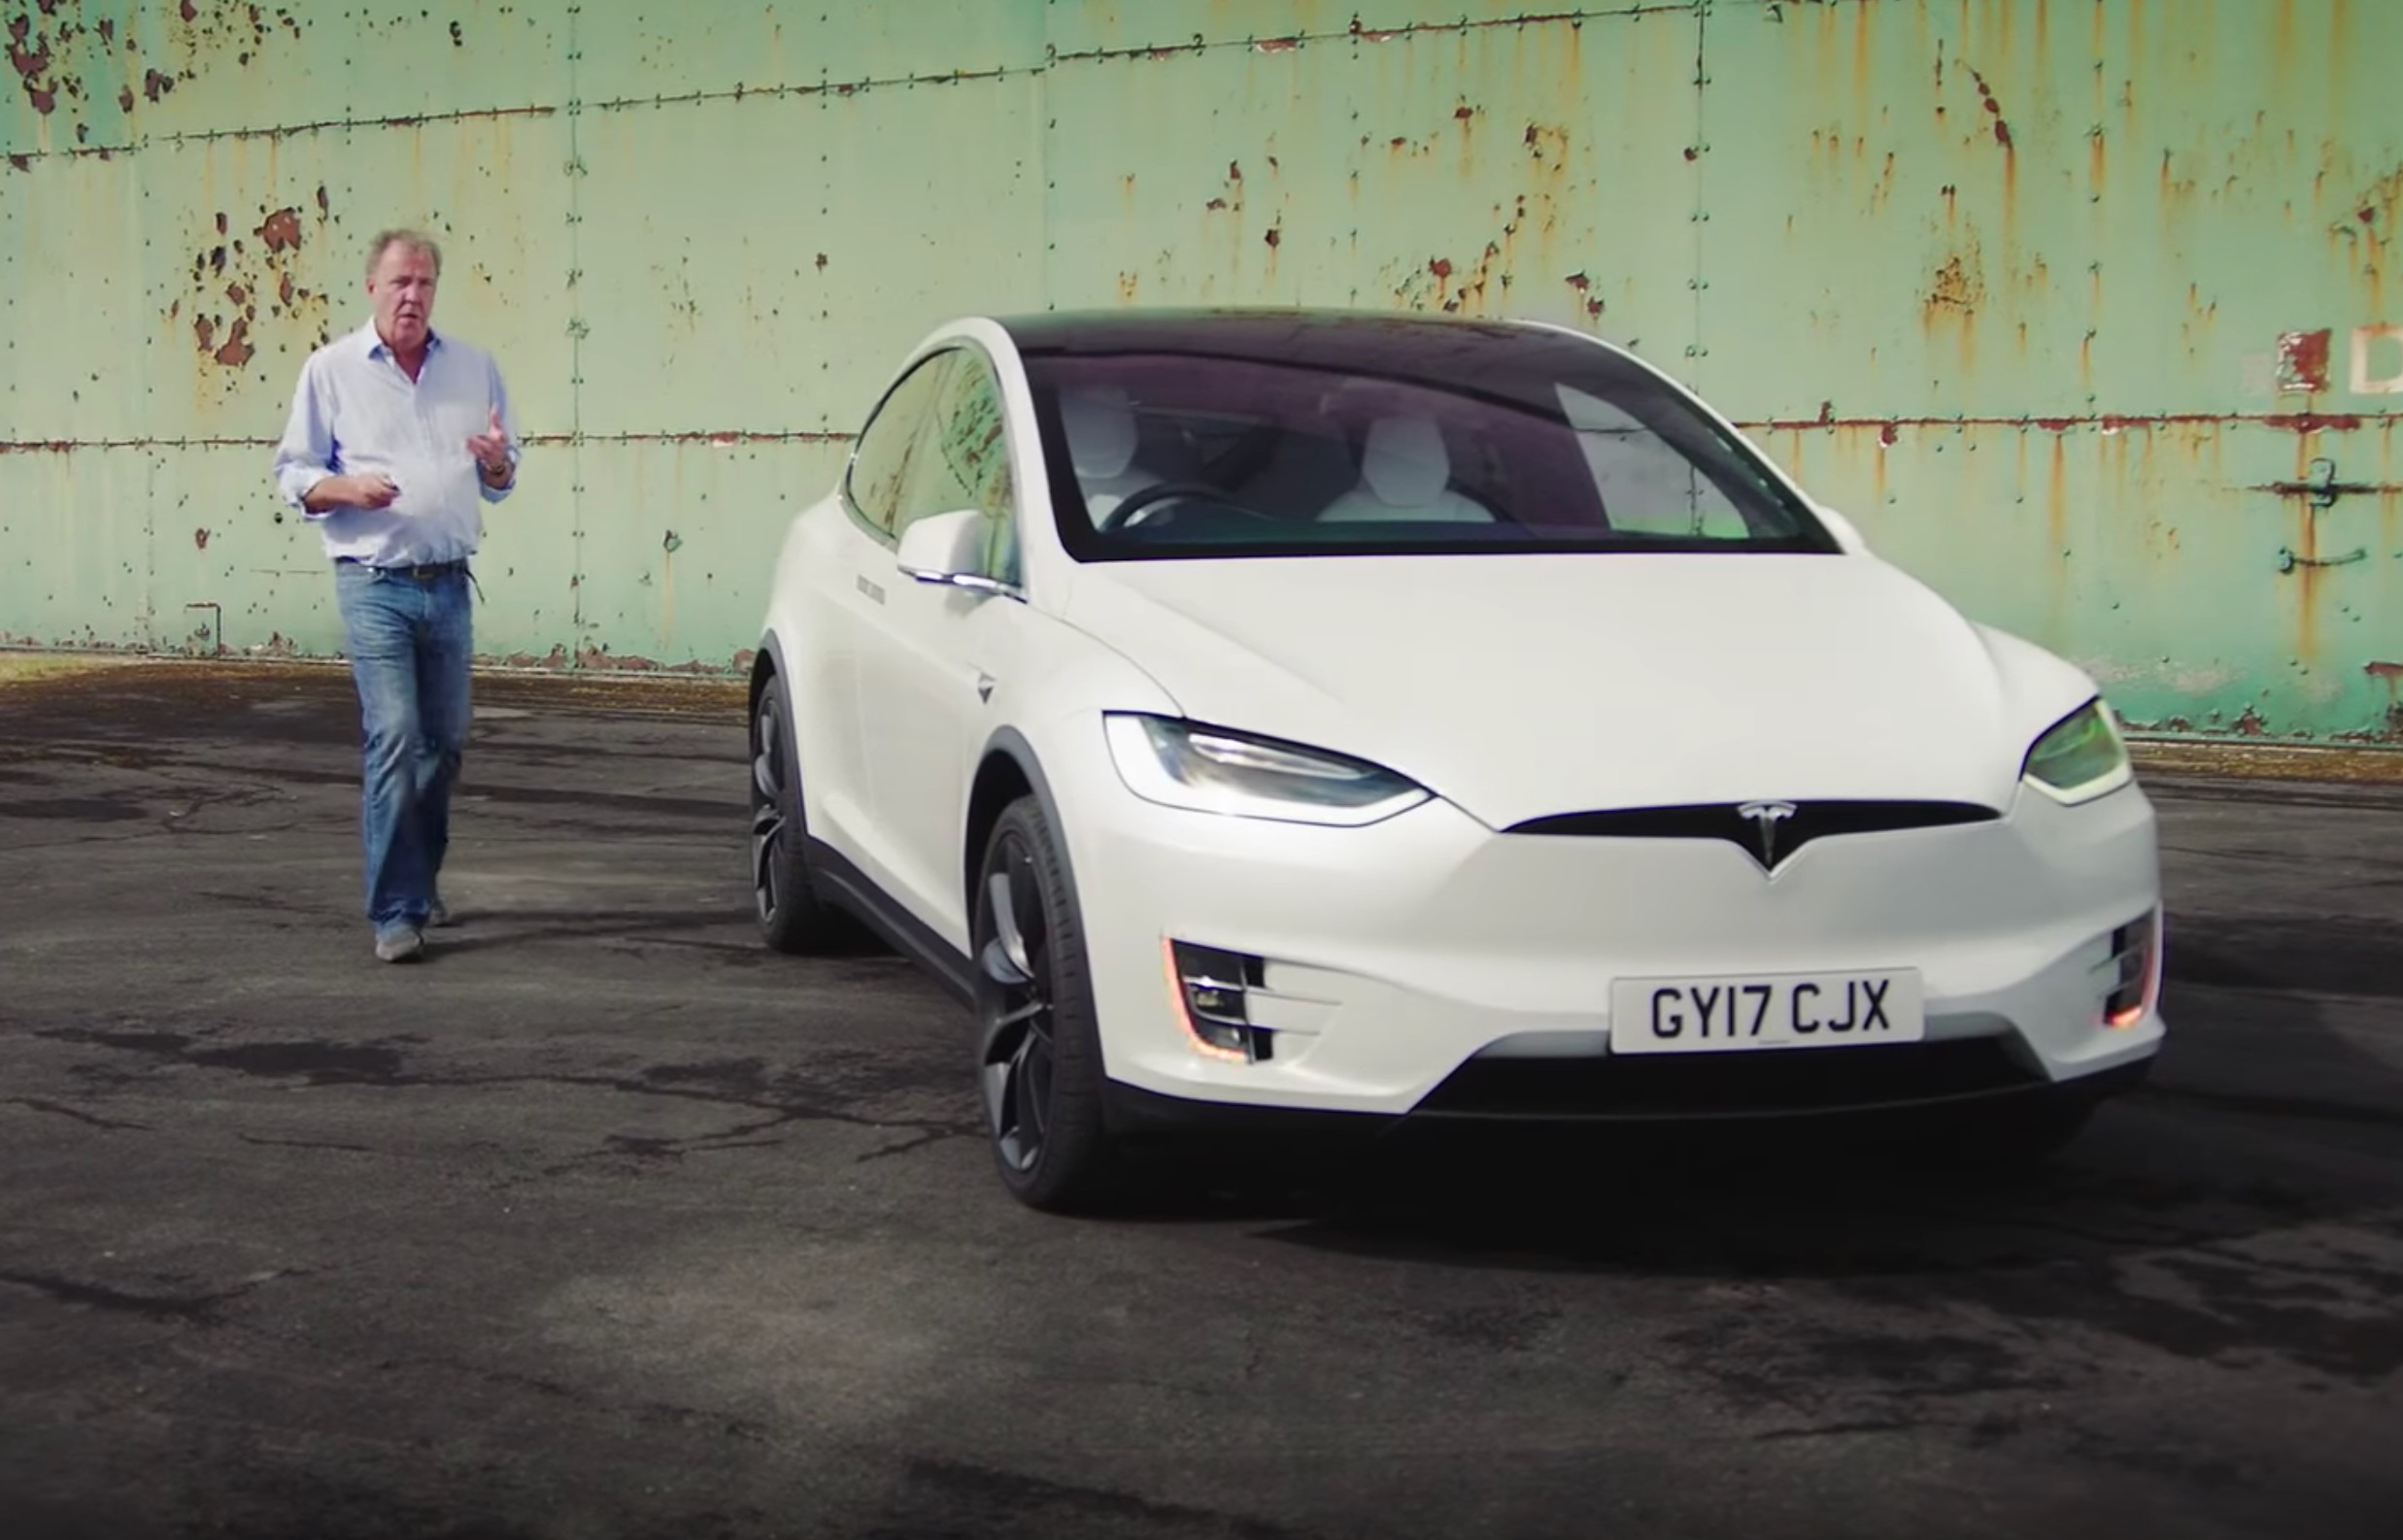 jeremy-clarkson-grand-tour-tesla-model-x-review-splash